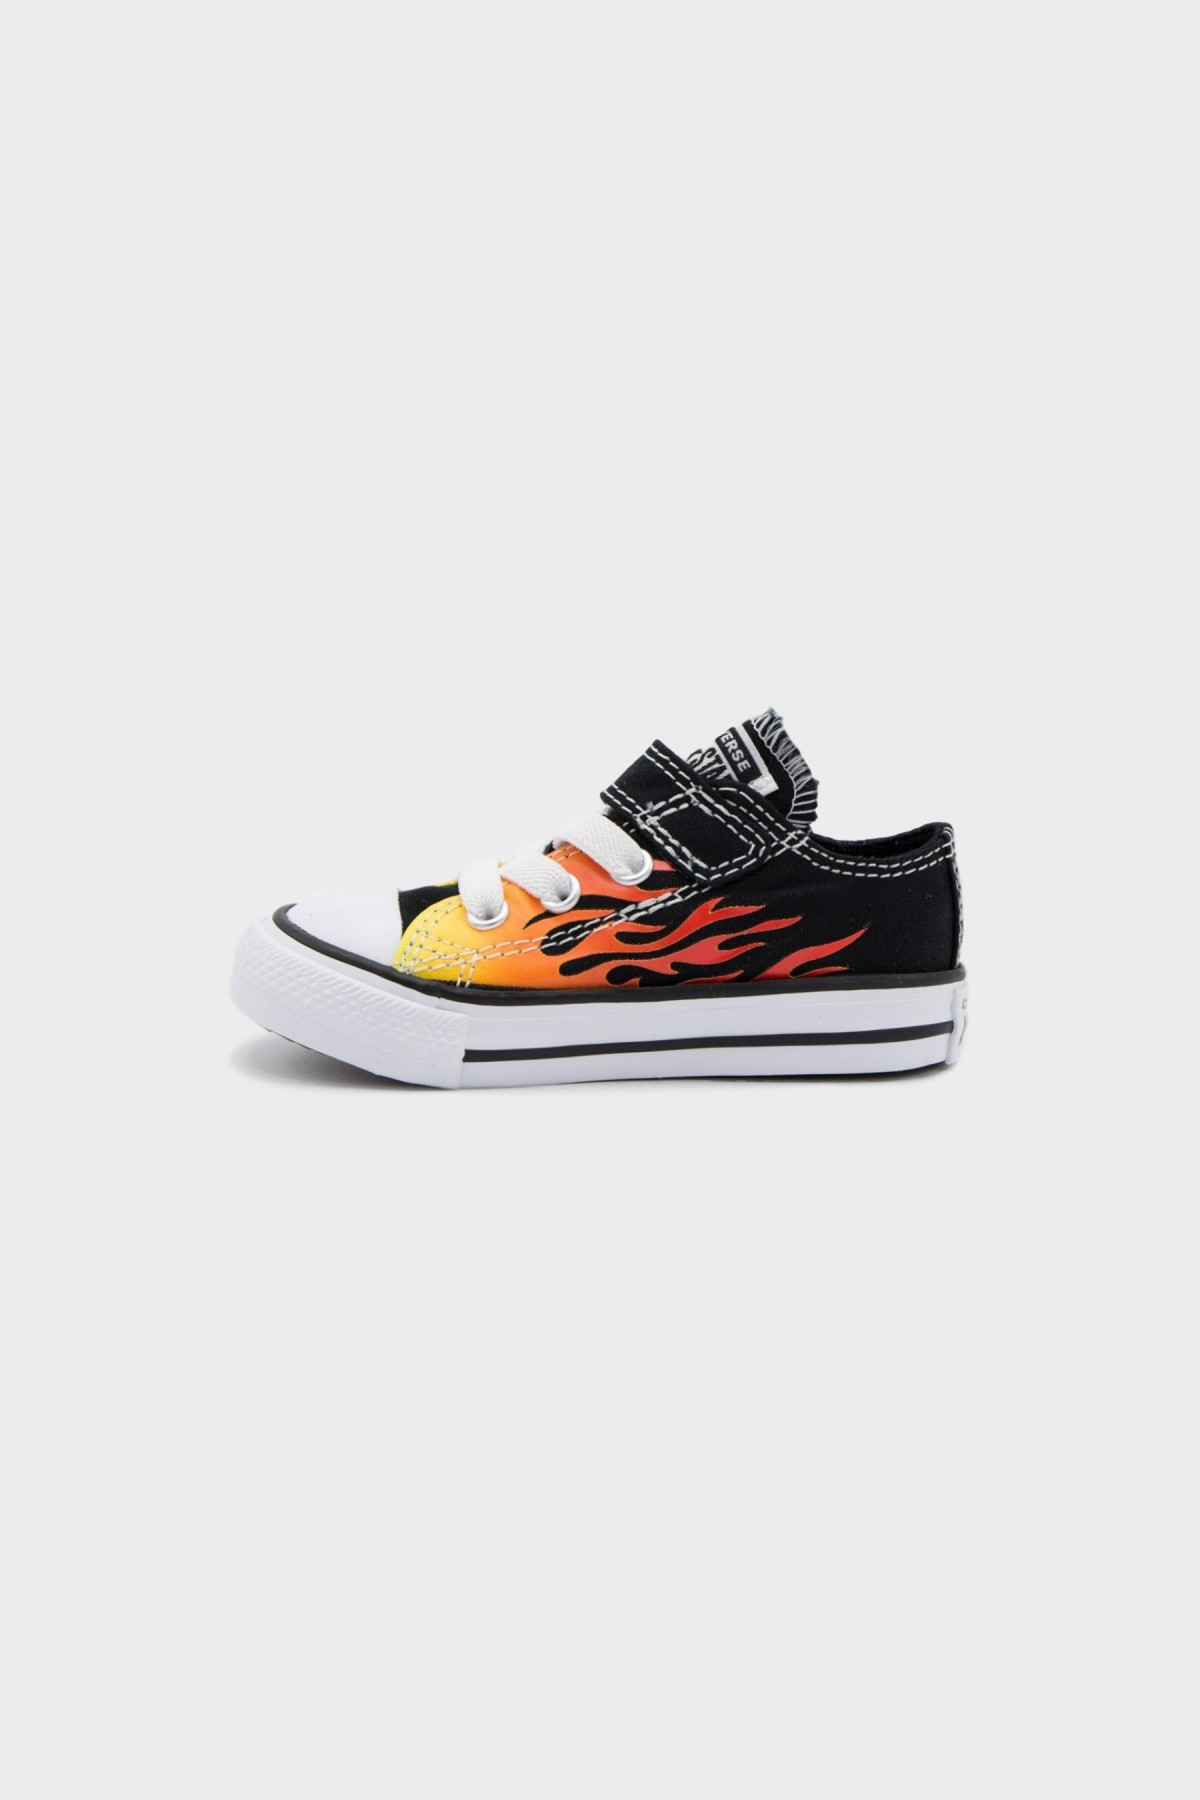 Converse All Stars OX Infant in Black Enamel